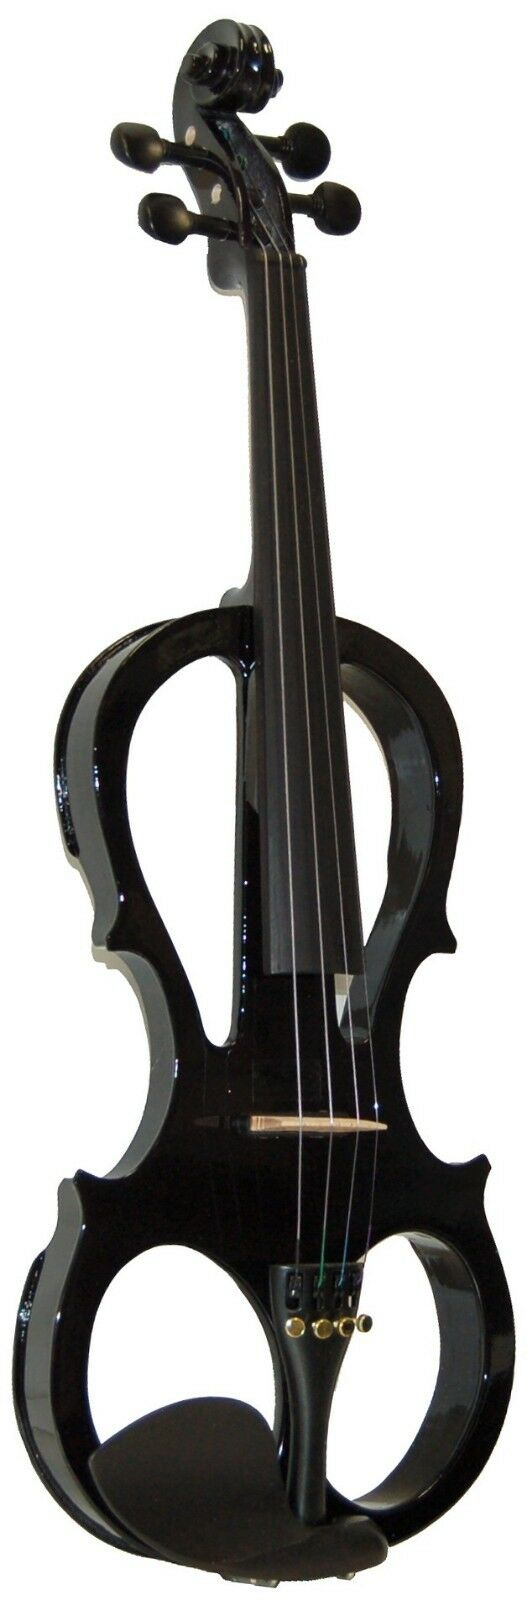 NEW MADERA schwarz 4 4 ELECTRIC VIOLIN PACKAGE WITH CASE, BOW, ROSIN - V2000CEQ